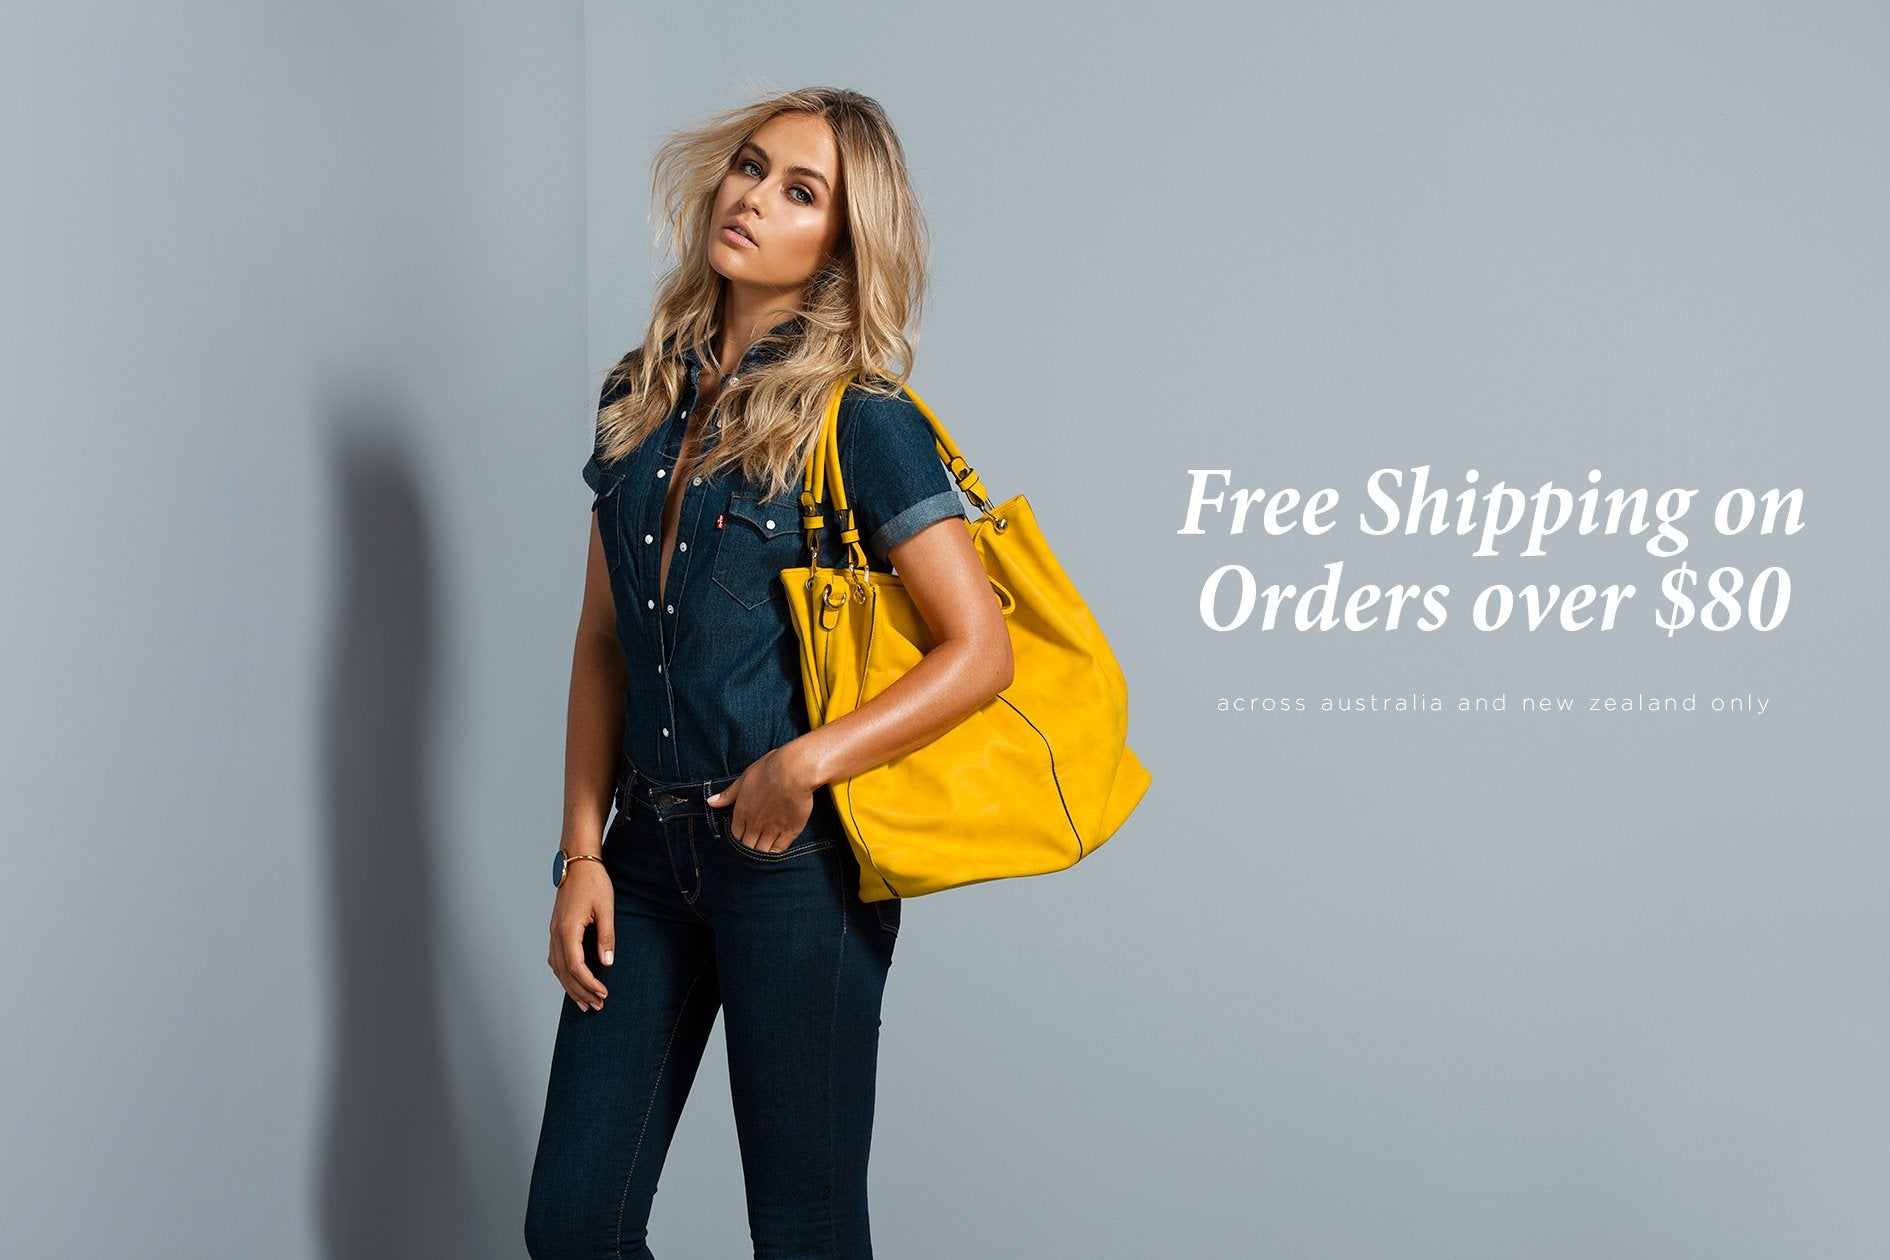 Free Shipping Australia and New Zealand